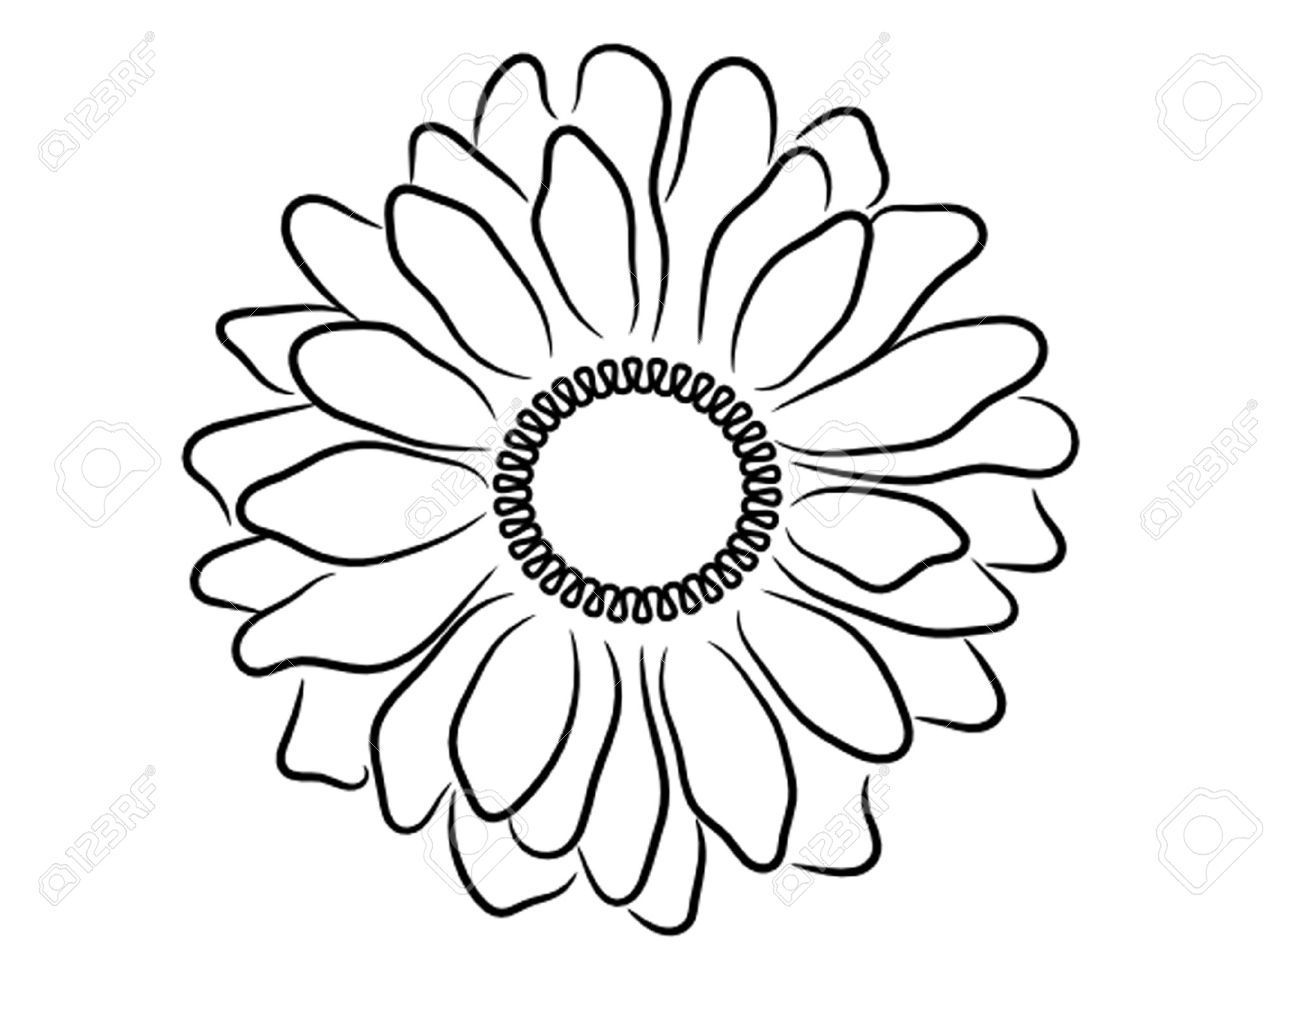 1300x1029 Black White Daisy Outline Royalty Free Cliparts, Vectors,